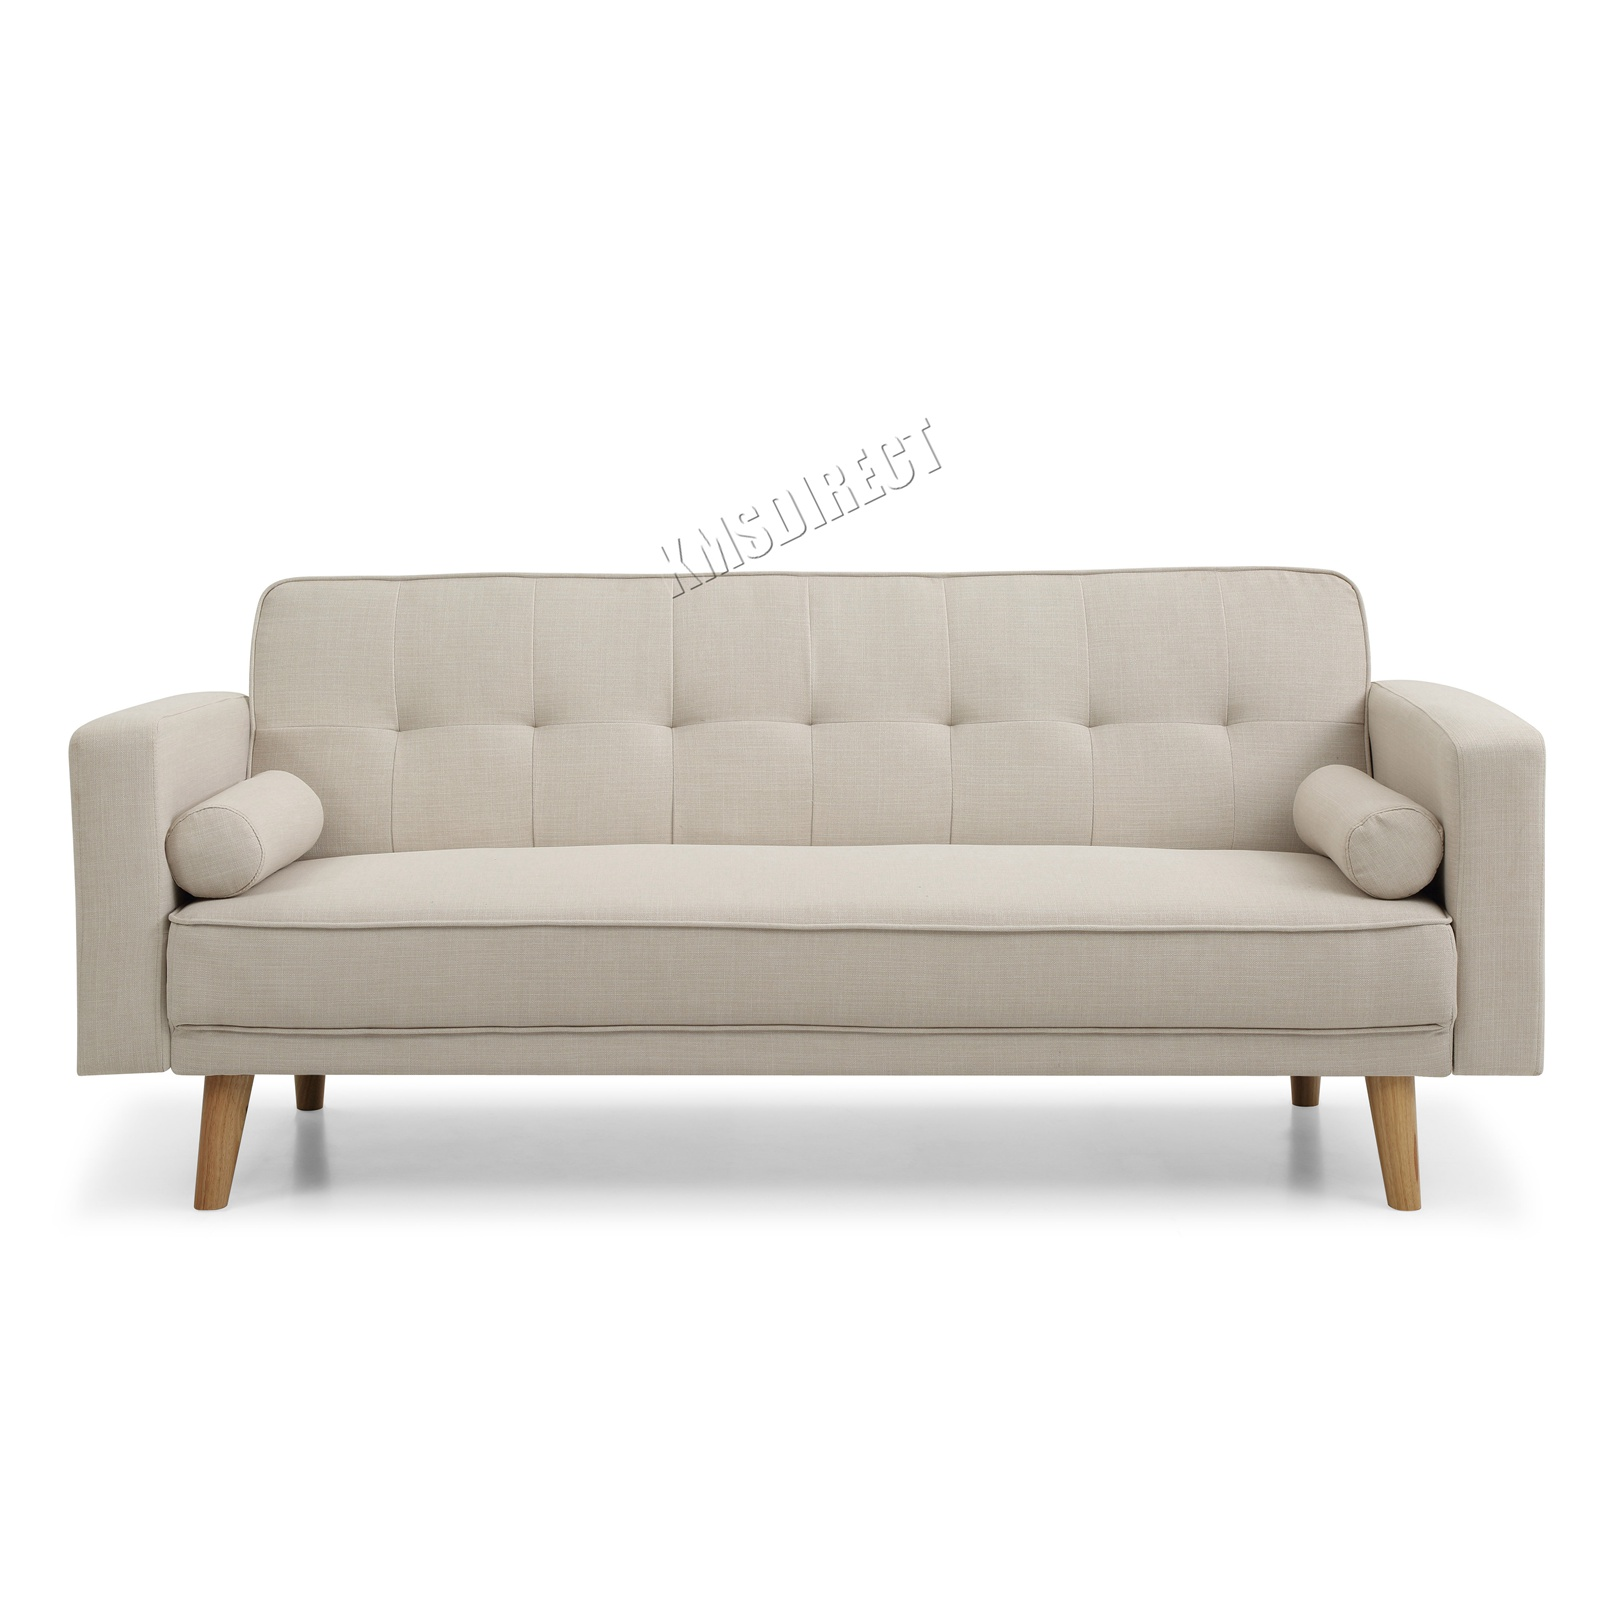 WestWood-Fabric-Sofa-Bed-3-Seater-Couch-Luxury-Modern-Home-Furniture-FSB04-New thumbnail 14